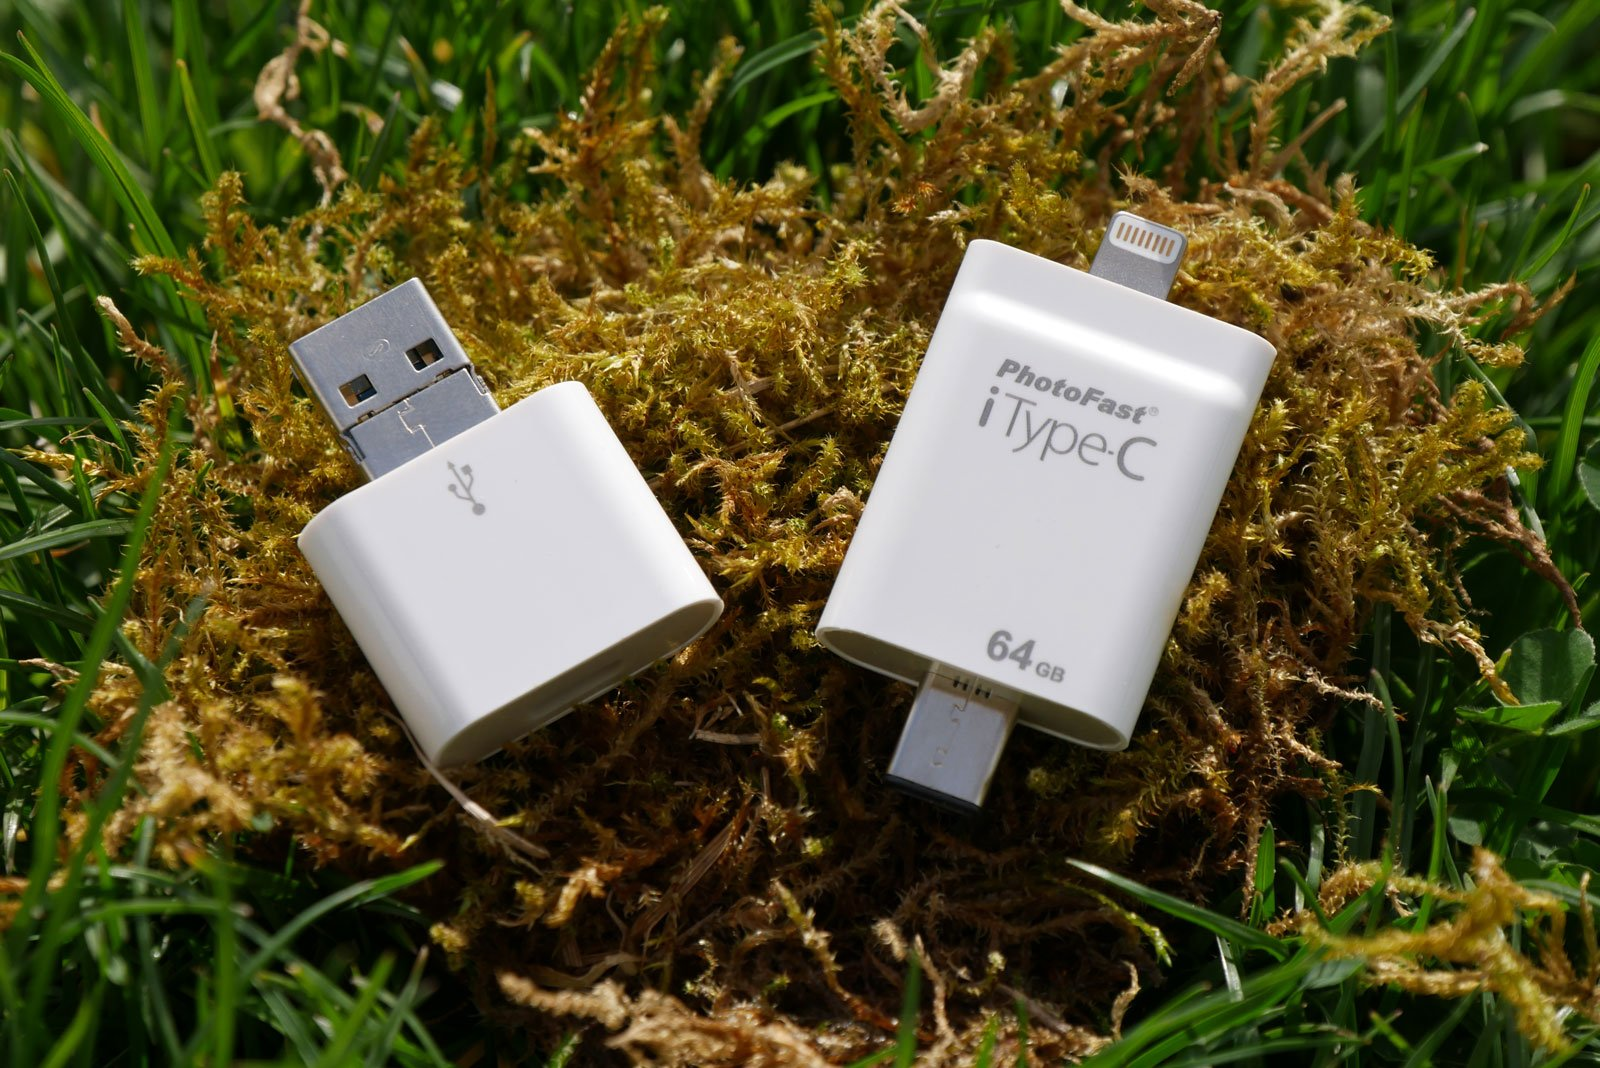 PhotoFast iType-C: USB-Stick für iPhone & iPad mit USB-C, Lightning, USB-A & microUSB 1